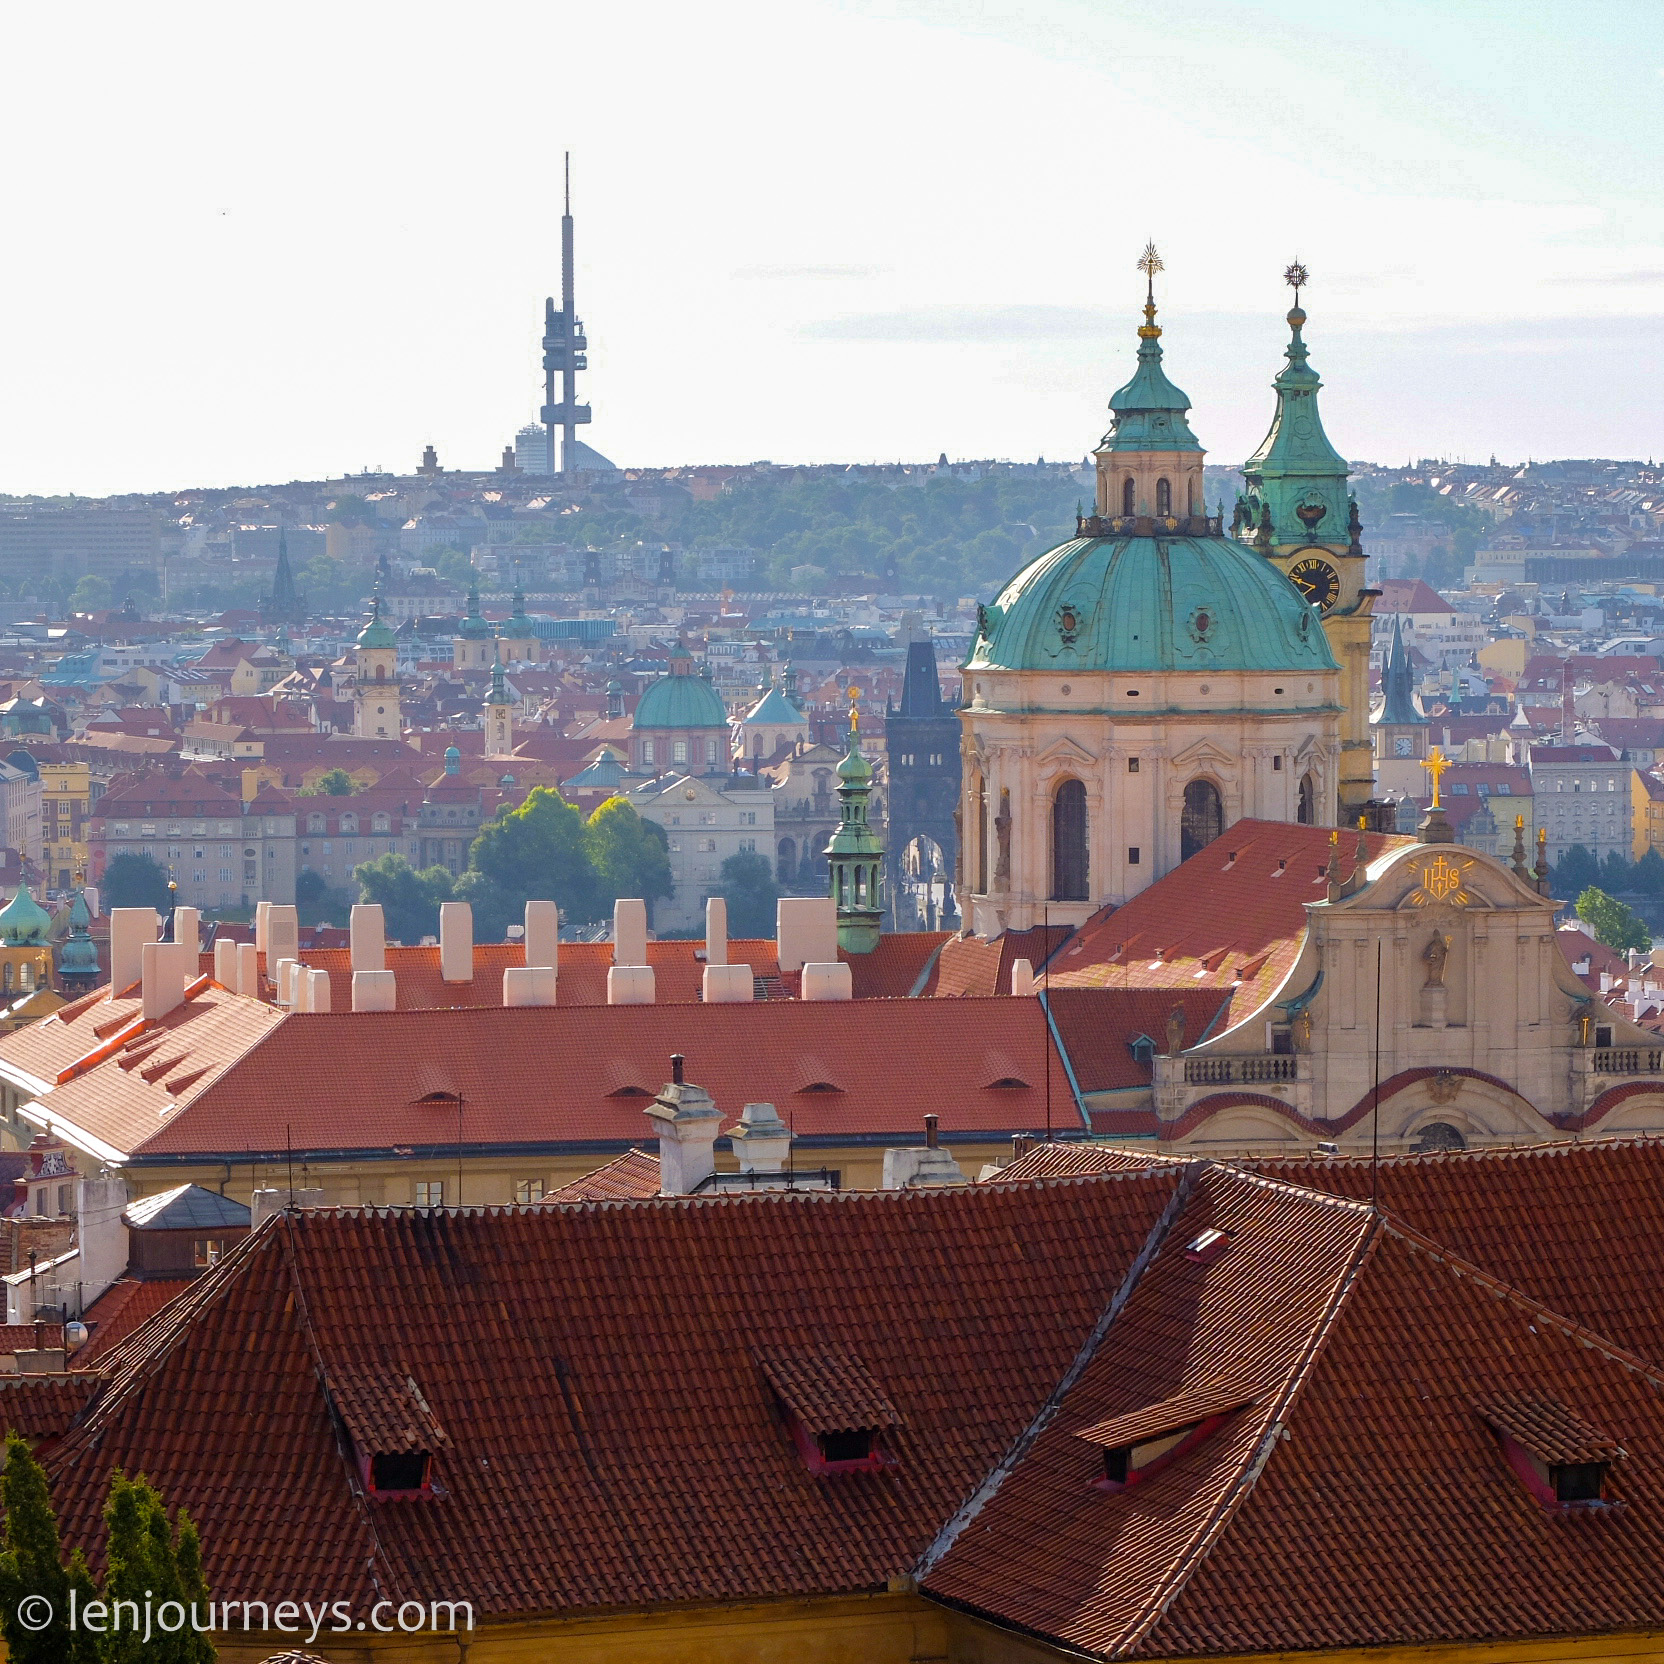 The City of Hundred Spires